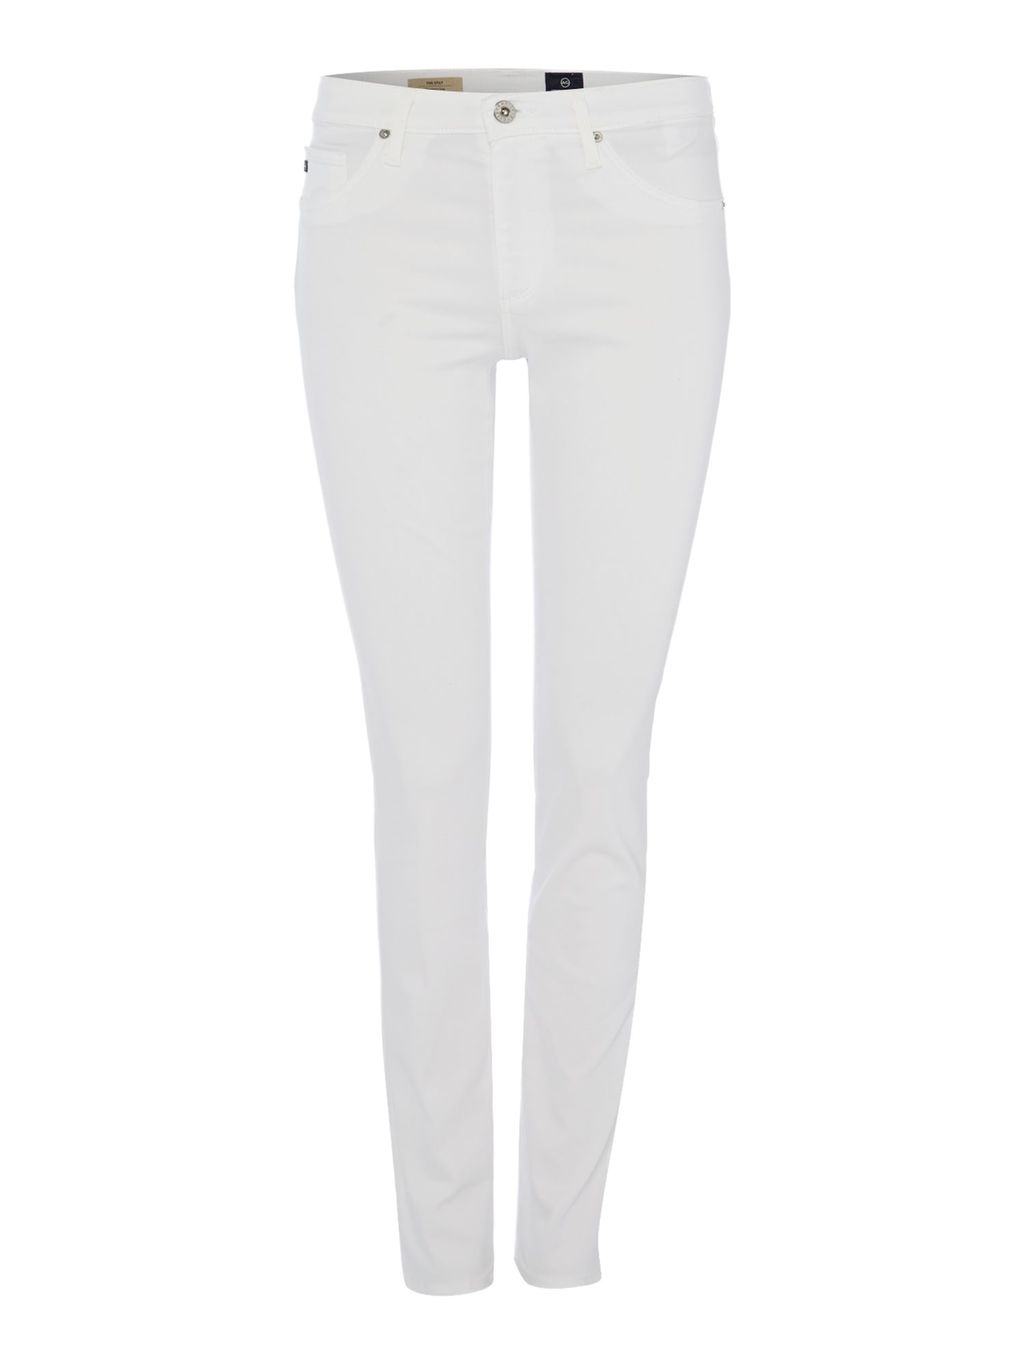 The Sateen Stilt In White, White - style: skinny leg; length: standard; pattern: plain; pocket detail: traditional 5 pocket; waist: mid/regular rise; predominant colour: white; occasions: casual, creative work; fibres: cotton - stretch; texture group: denim; pattern type: fabric; season: s/s 2016; wardrobe: highlight